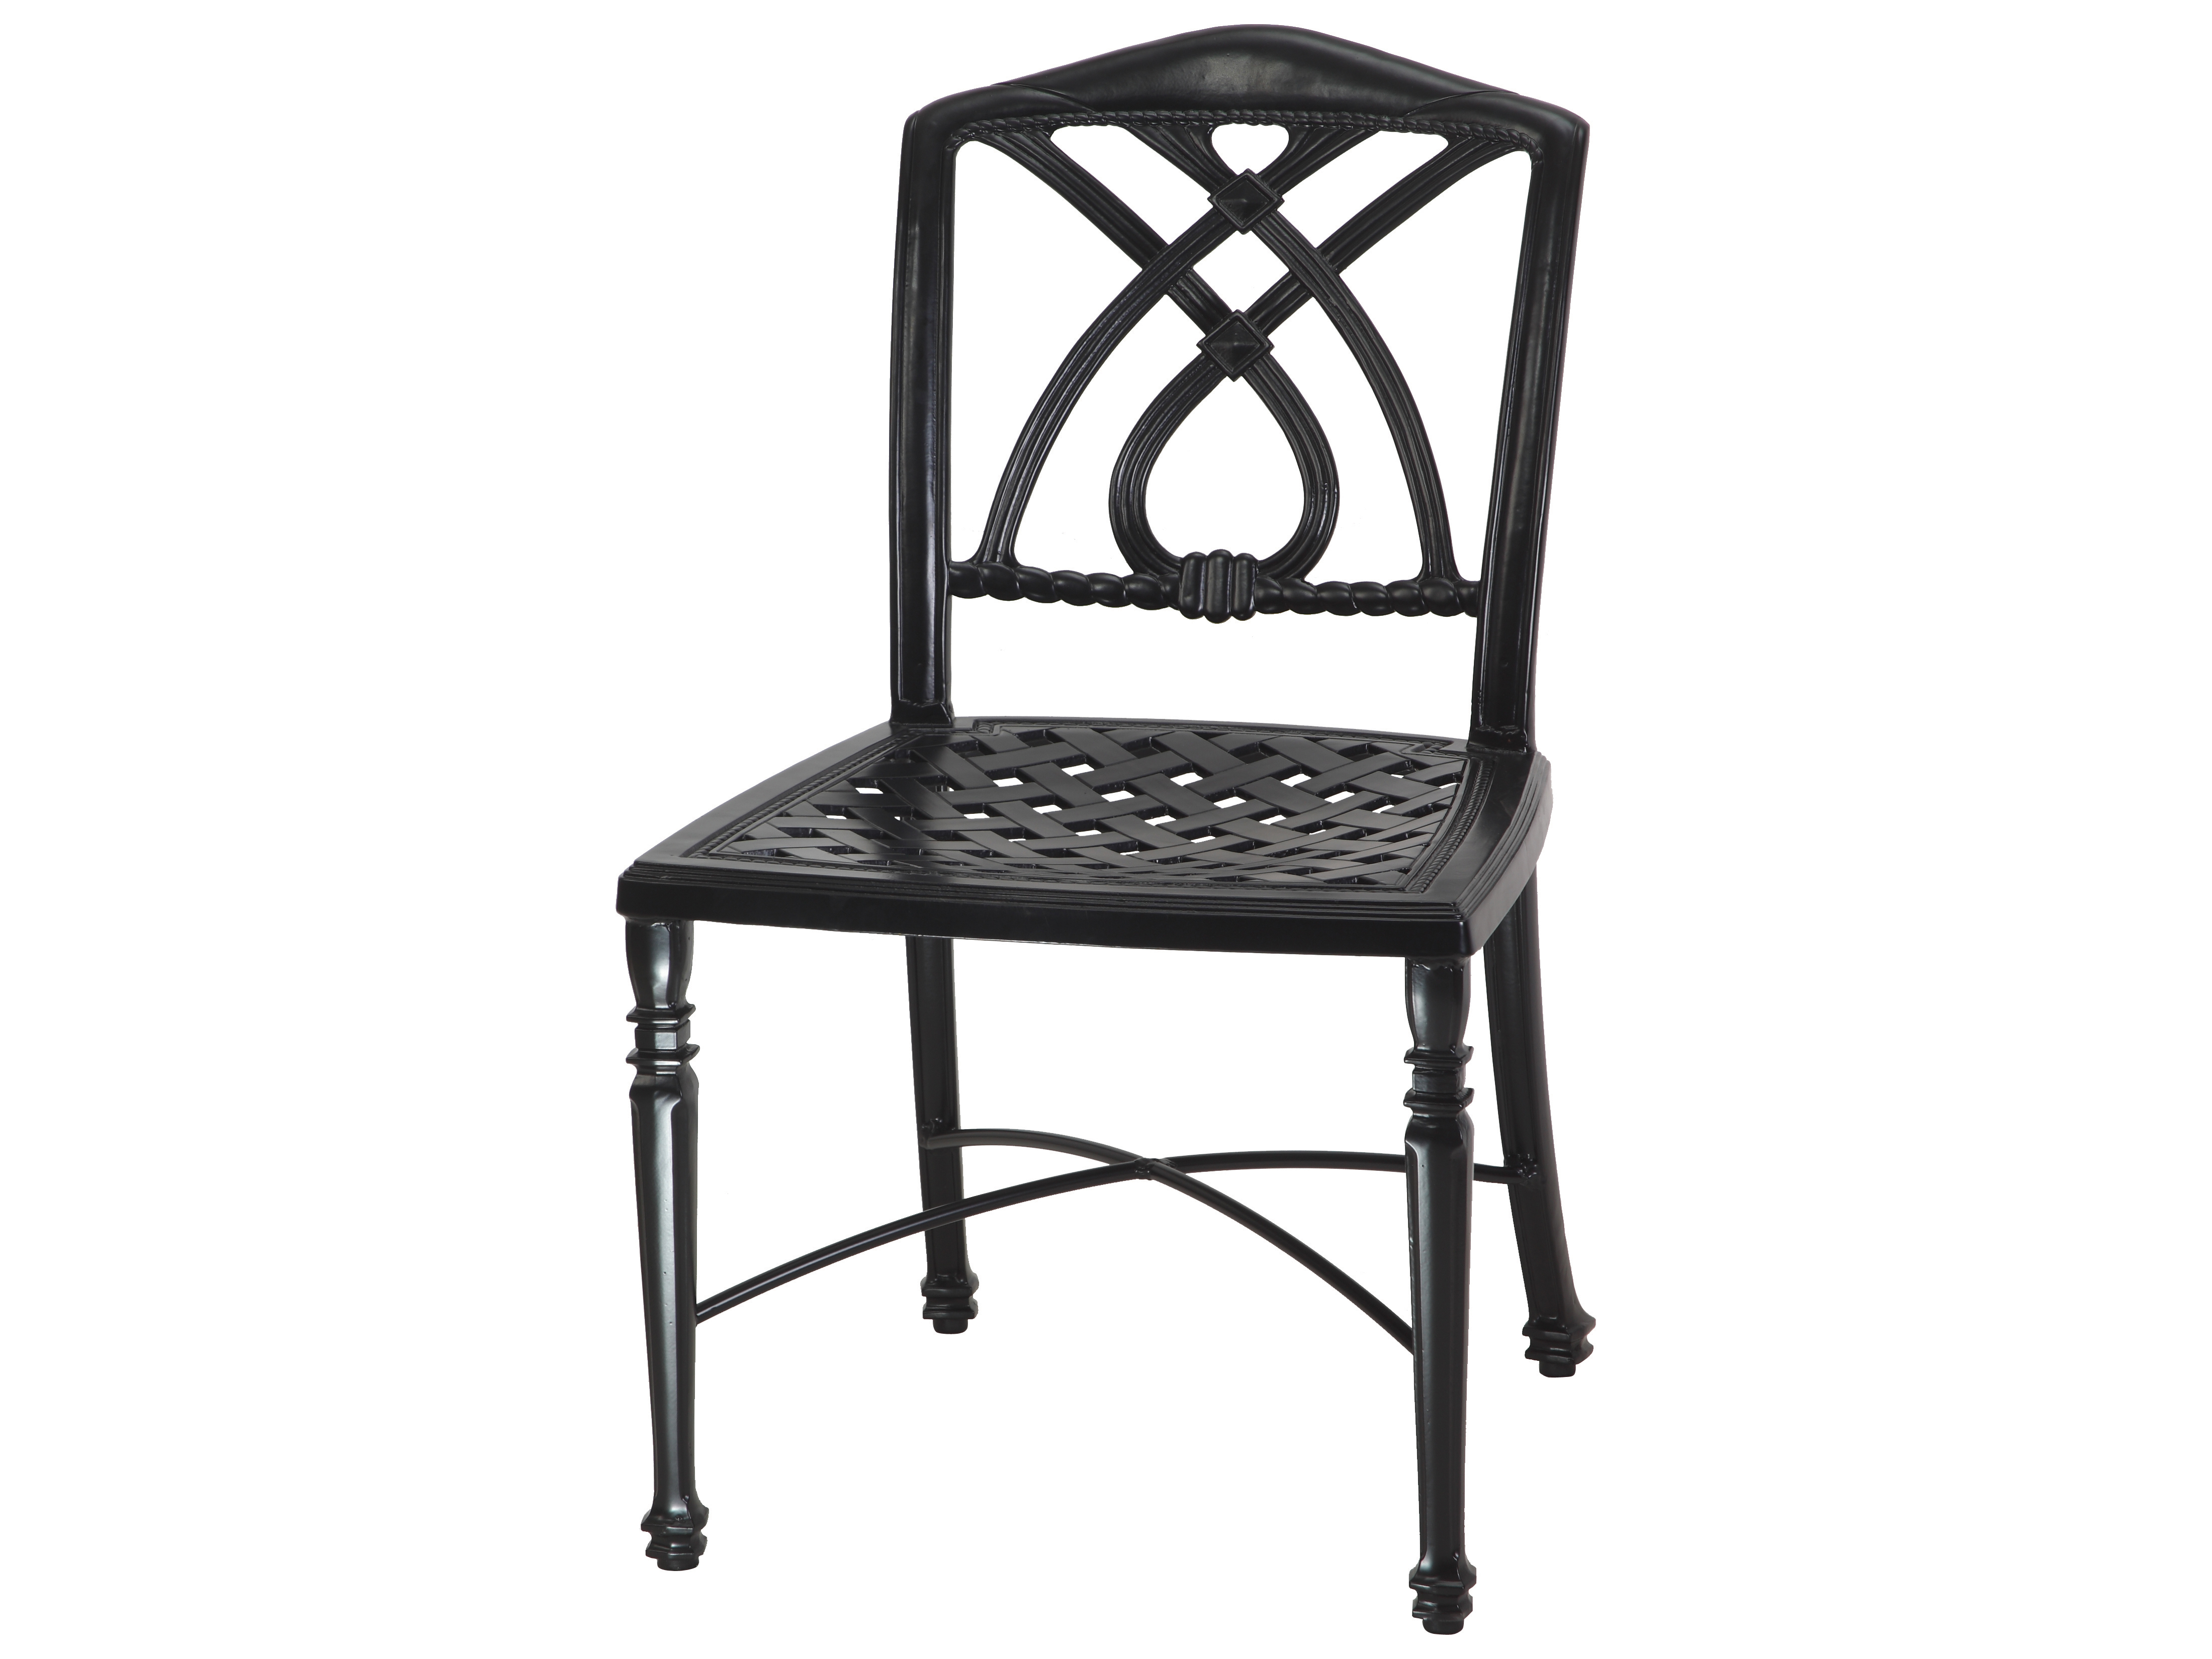 Gensun Terrace Cast Aluminum Cushion Cafe Chair Without